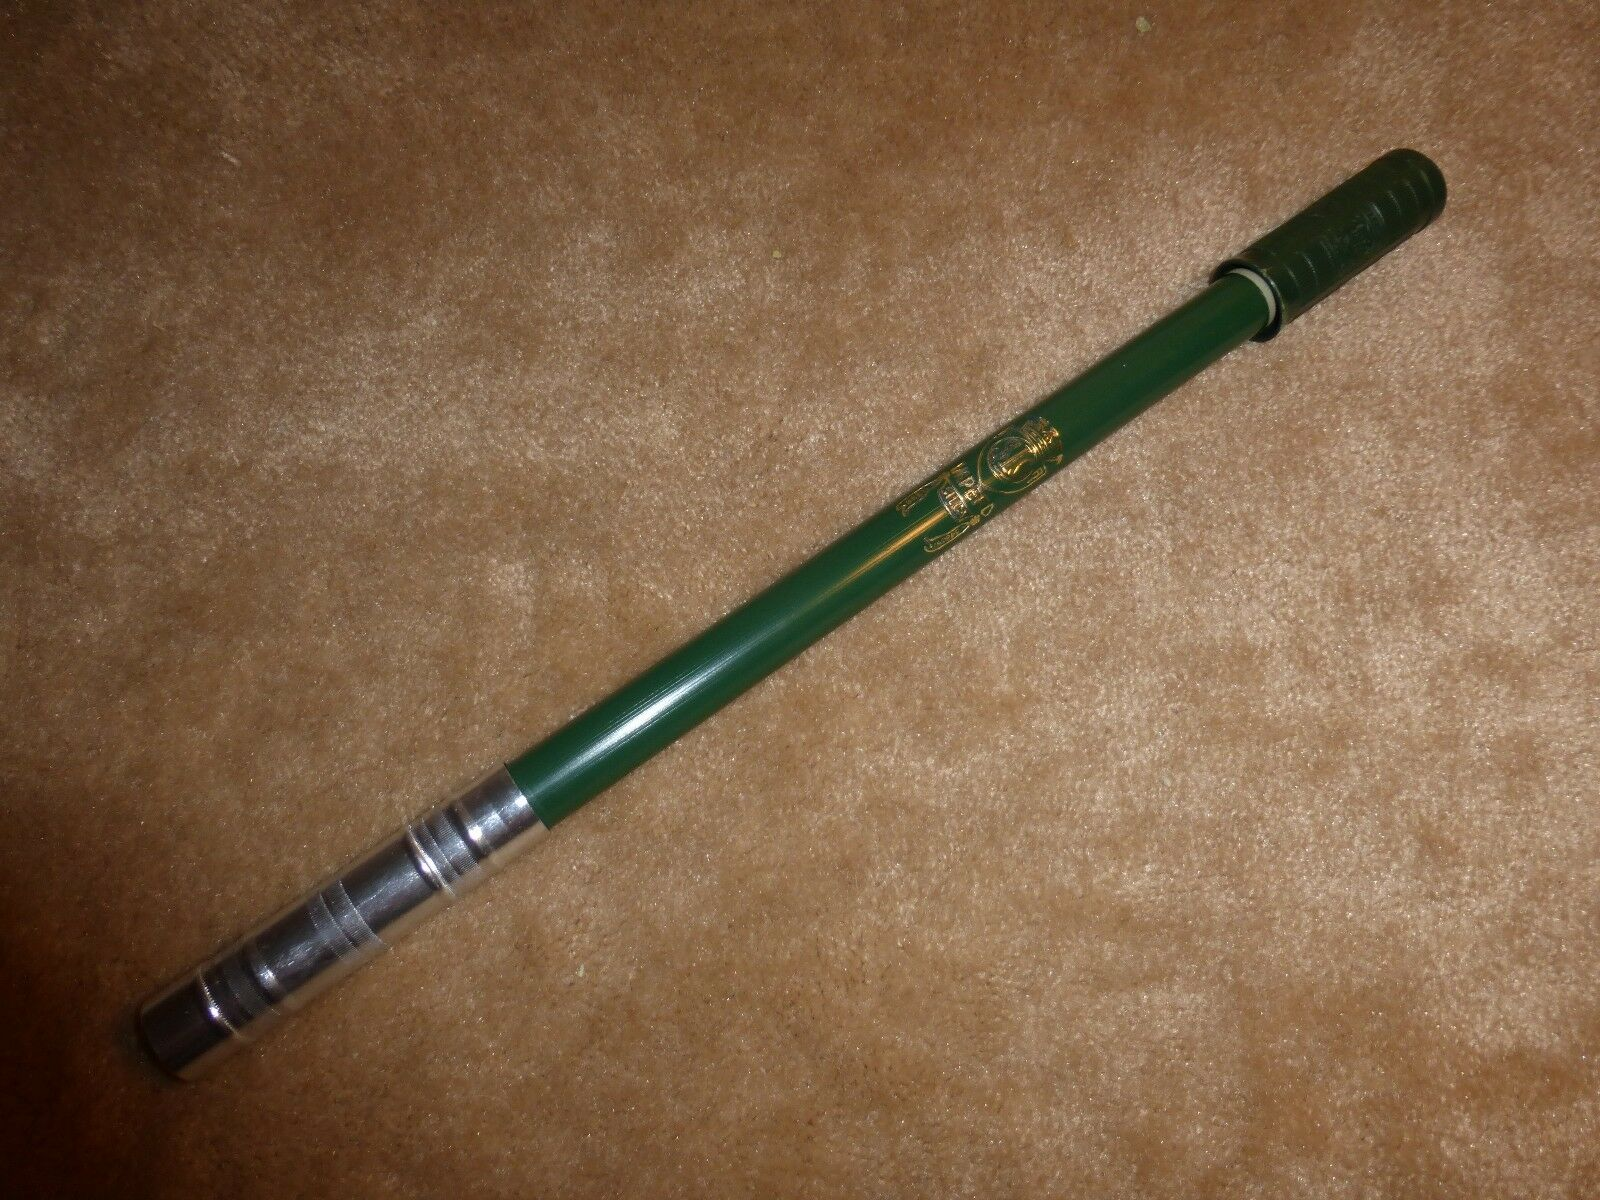 Vintage 1960's  - 1970's  NOS  Silca  Flat Top  Frame Pump - GREEN - 500 mm only   cheapest price